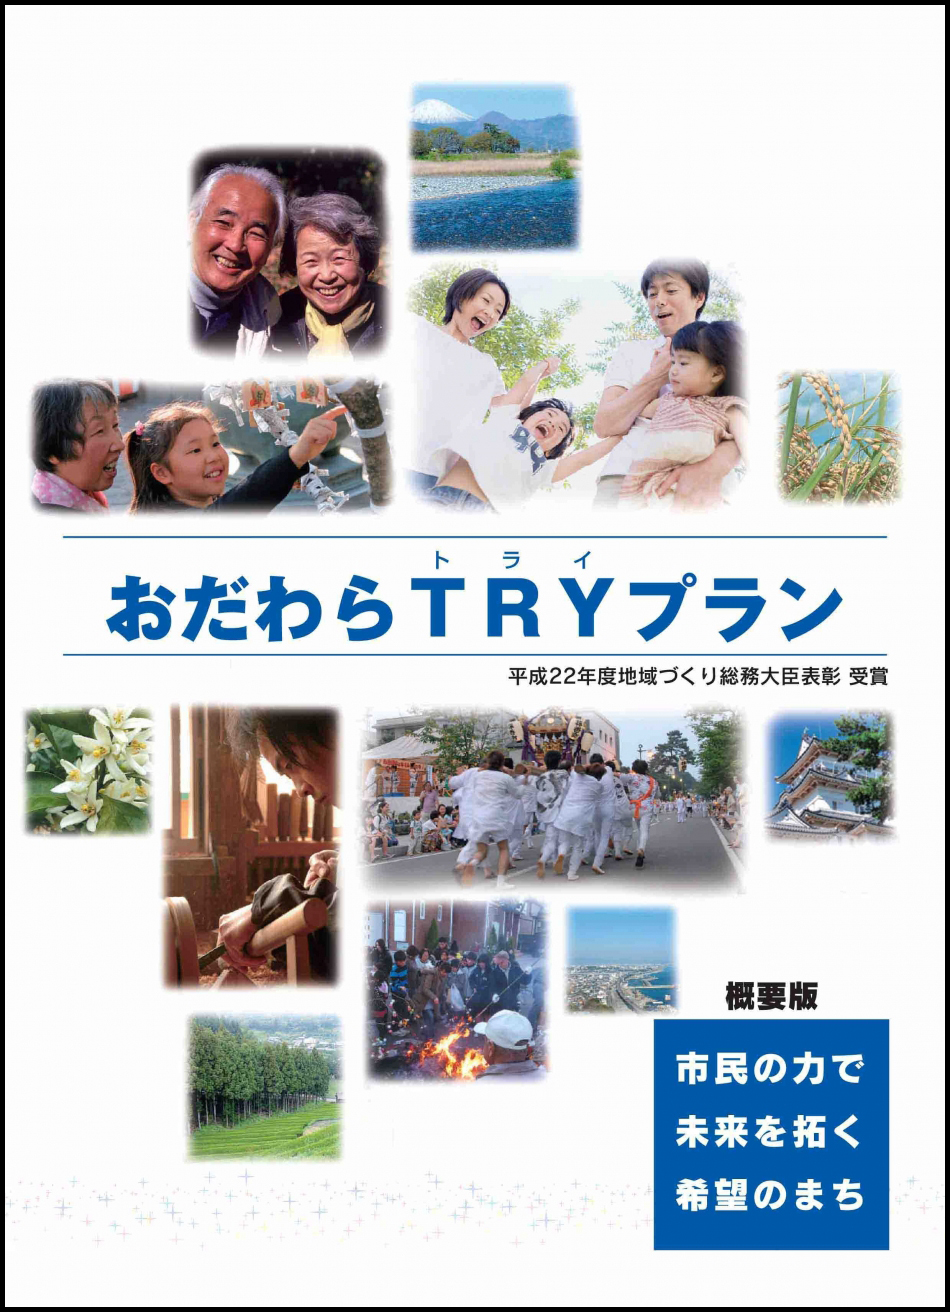 odawara TRY plan (summary version)